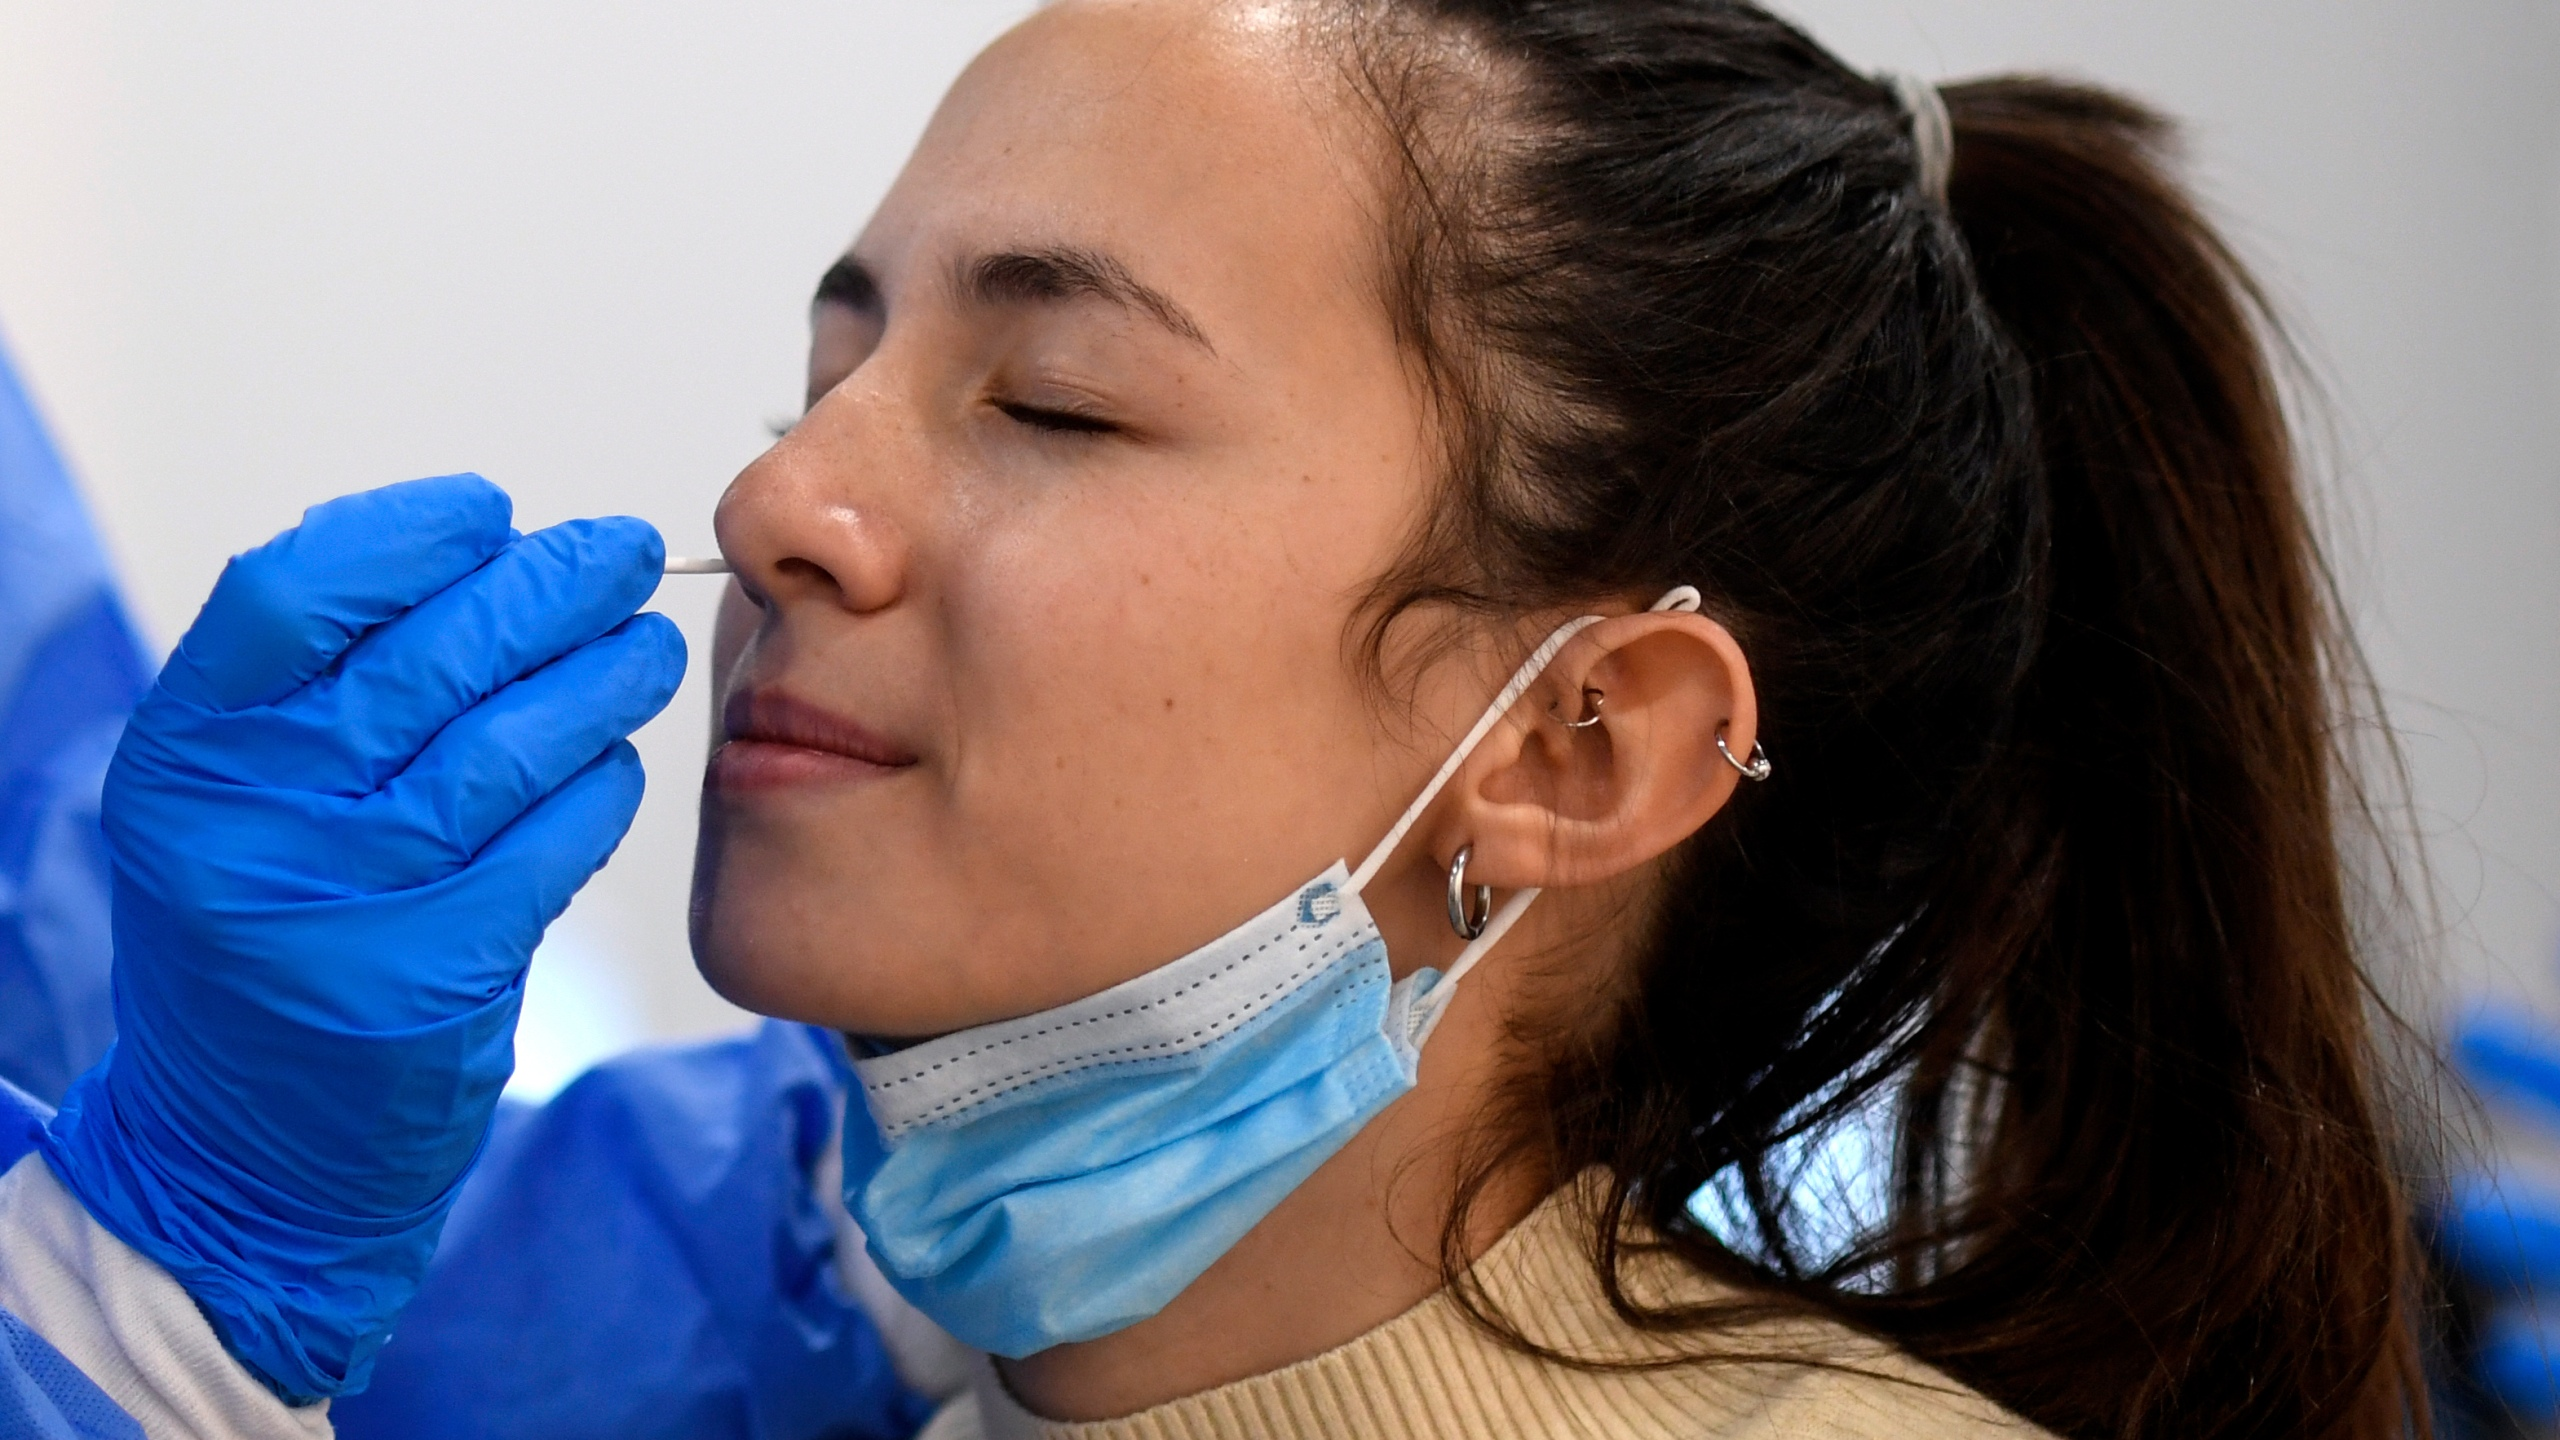 A medical worker takes a swab sample from a woman in Madrid, on Thursday while testing for potential coronavirus cases. (Photo by OSCAR DEL POZO/AFP via Getty Images)